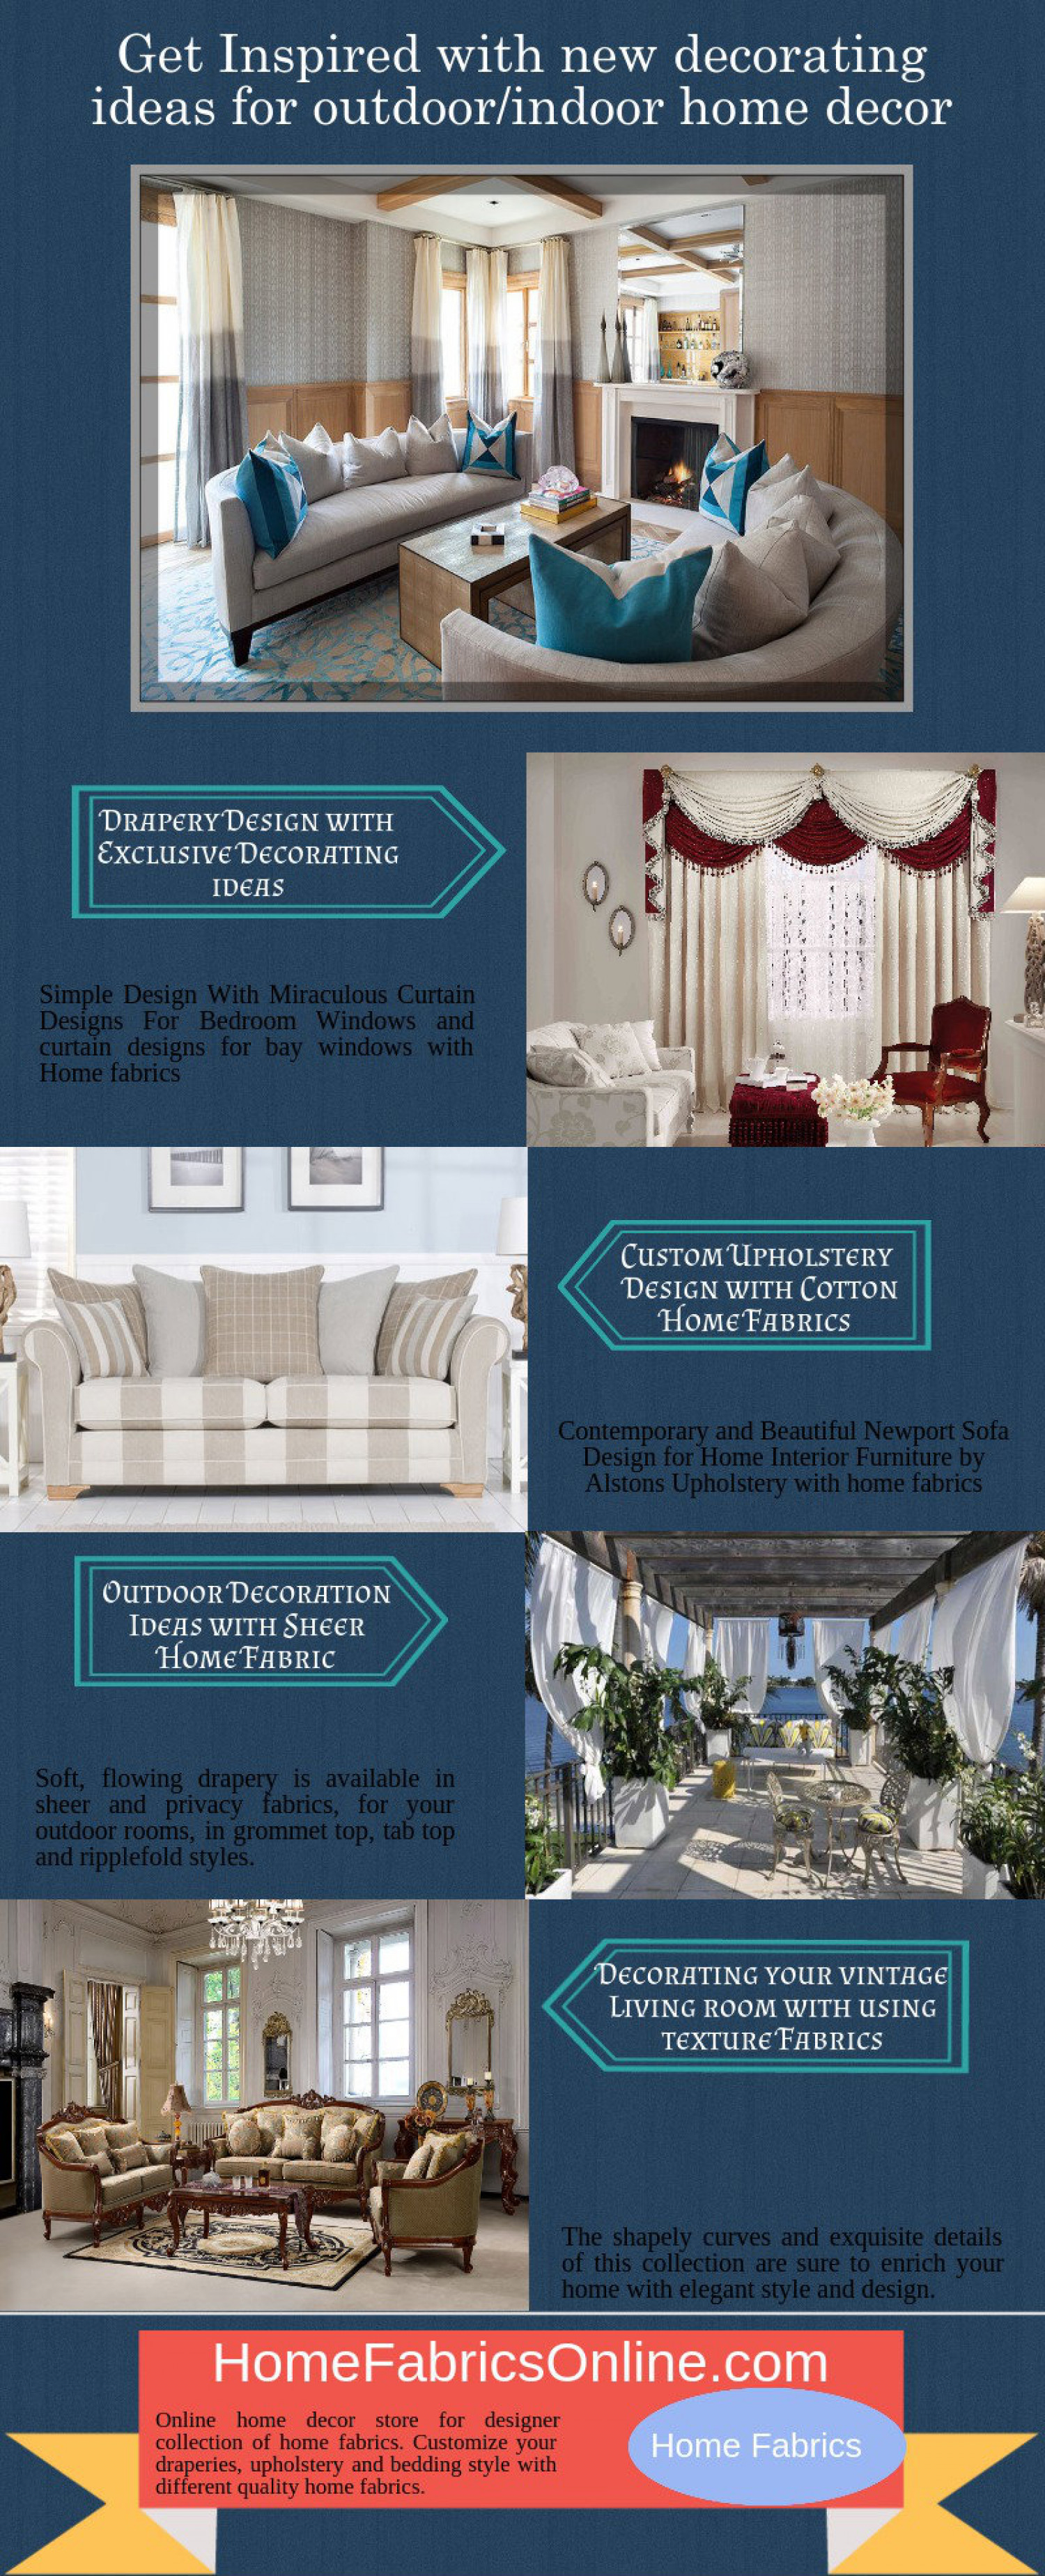 Get Inspired With New Decorating Ideas For Outdoor/indoor Home Decor  Infographic